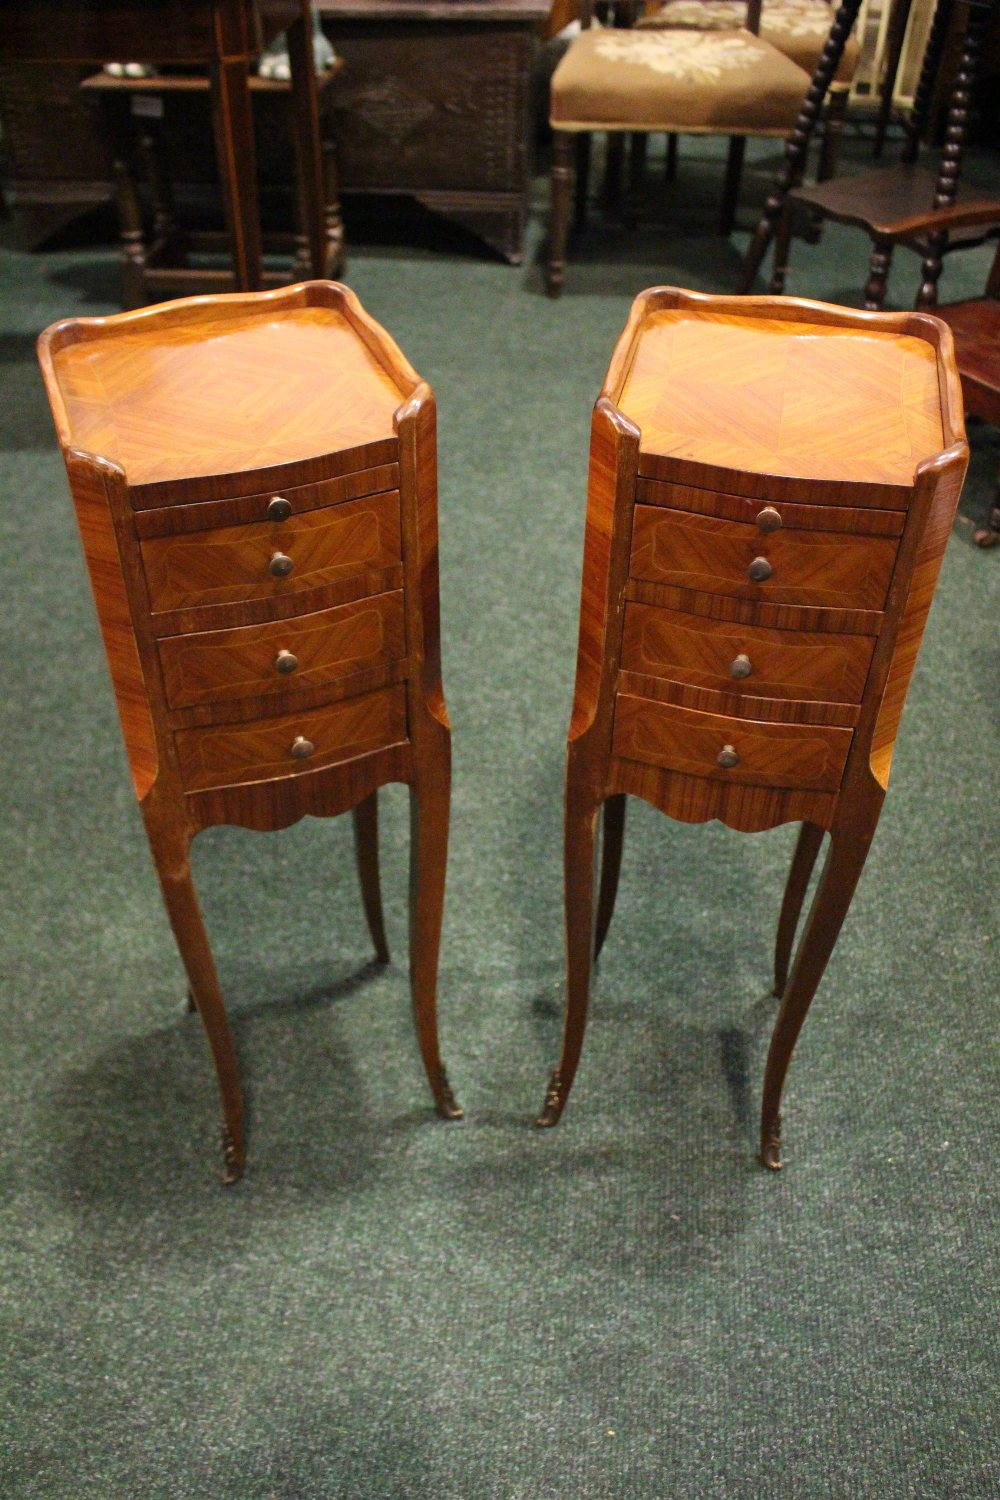 Lot 31 - A PAIR OF NEATLY SIZED KINGWOOD CROSSBANDED CHESTS, with 3 drawers to each, and a leather topped